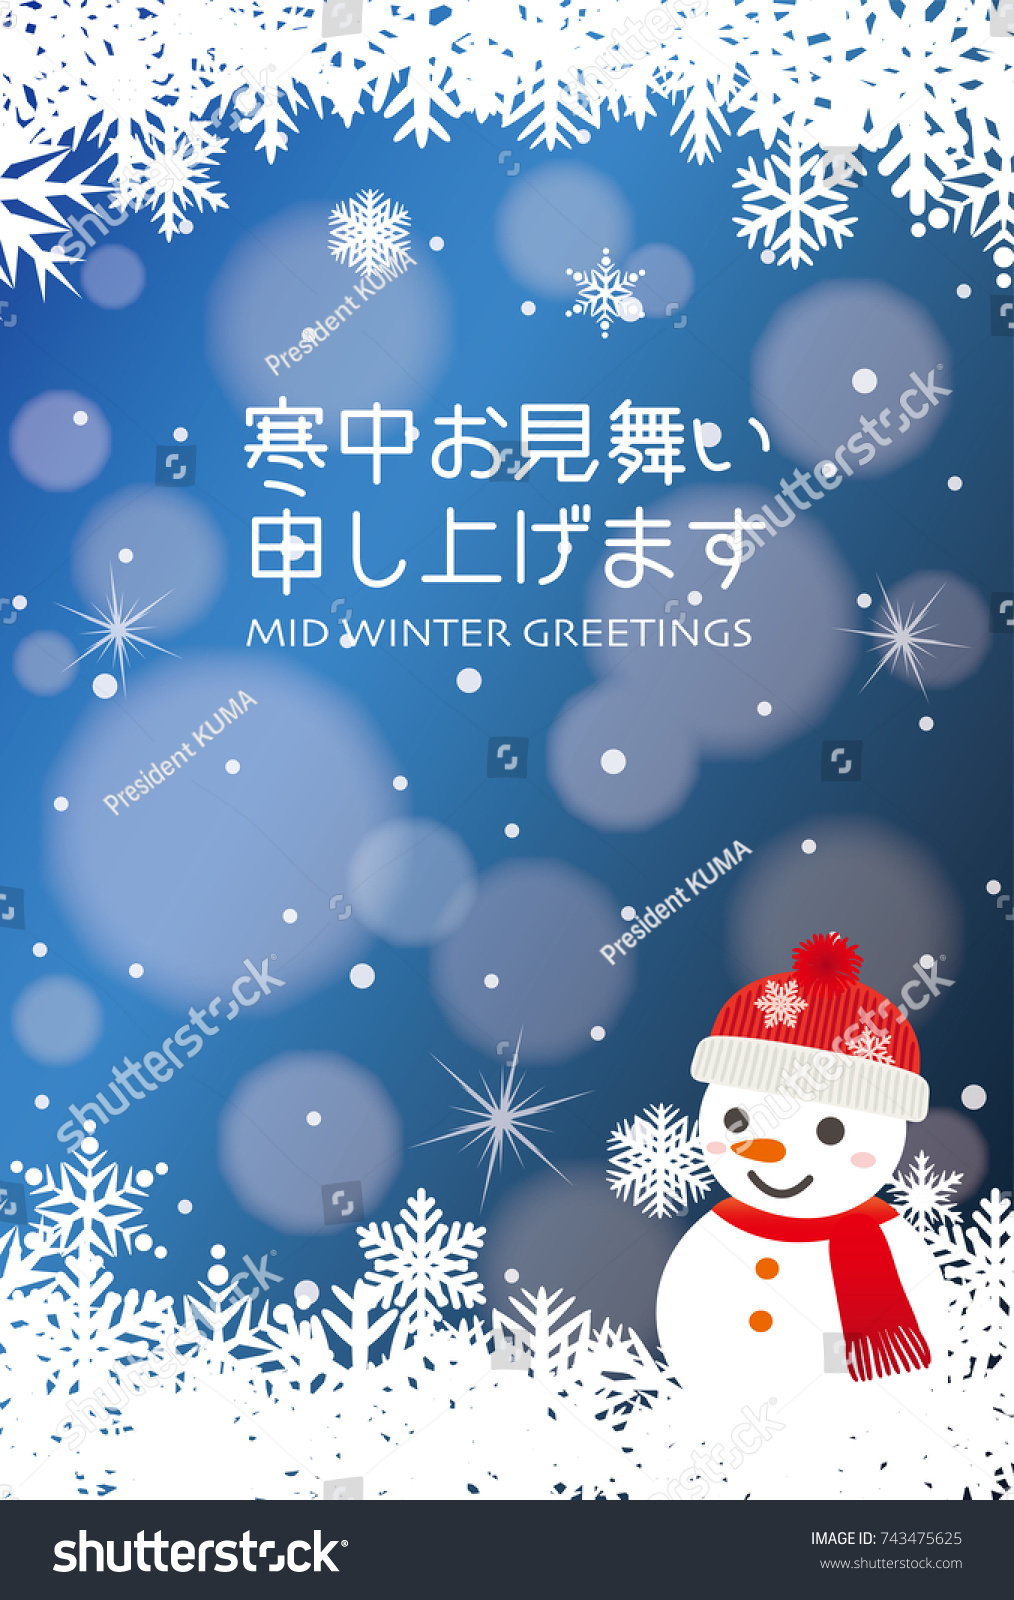 Japanese midwinter greeting card in japanese stock photo photo japanese mid winter greeting card in japanese it is written mid m4hsunfo